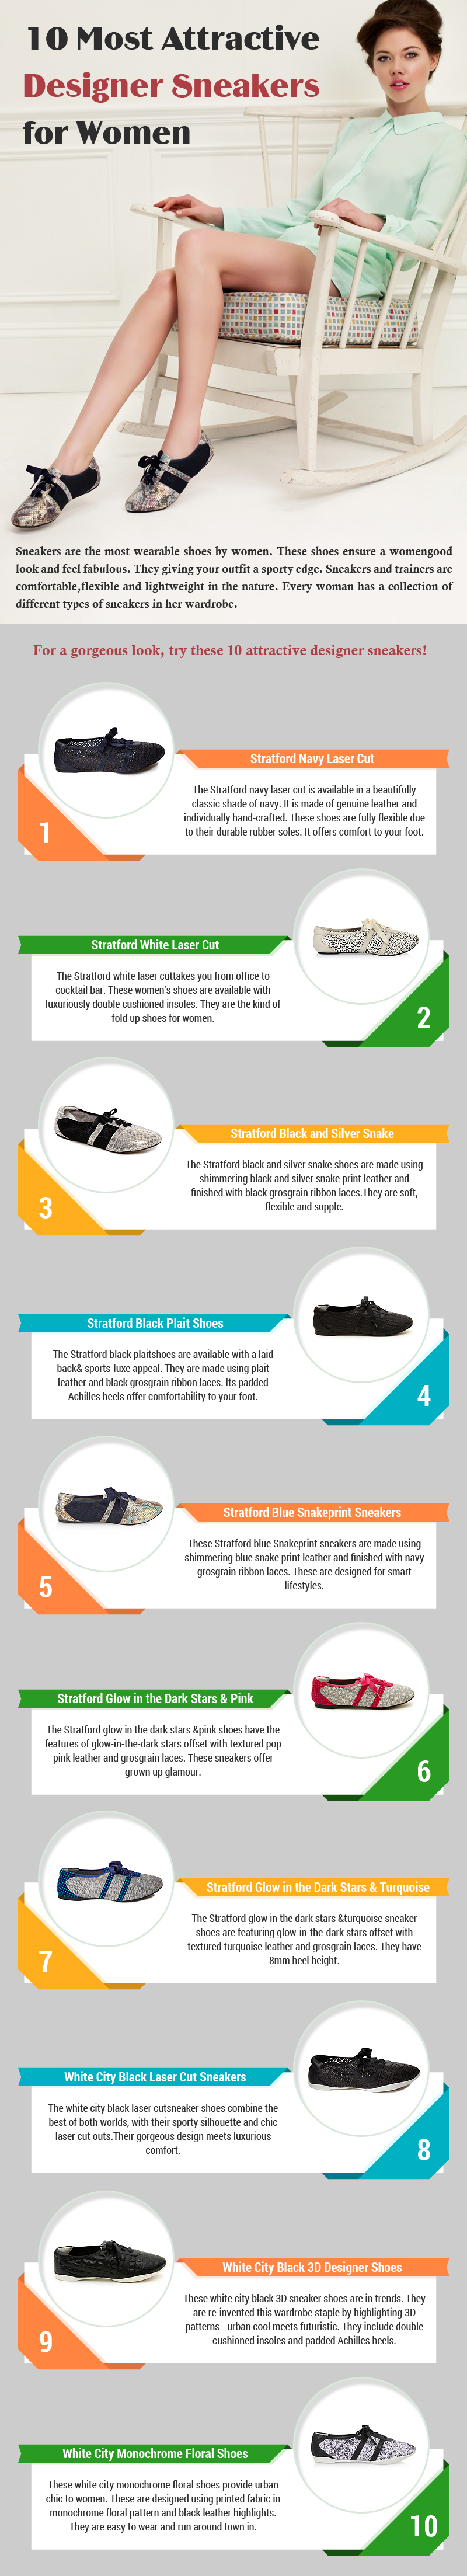 10 Most Attractive Designer Sneakers for Women [Infographic]